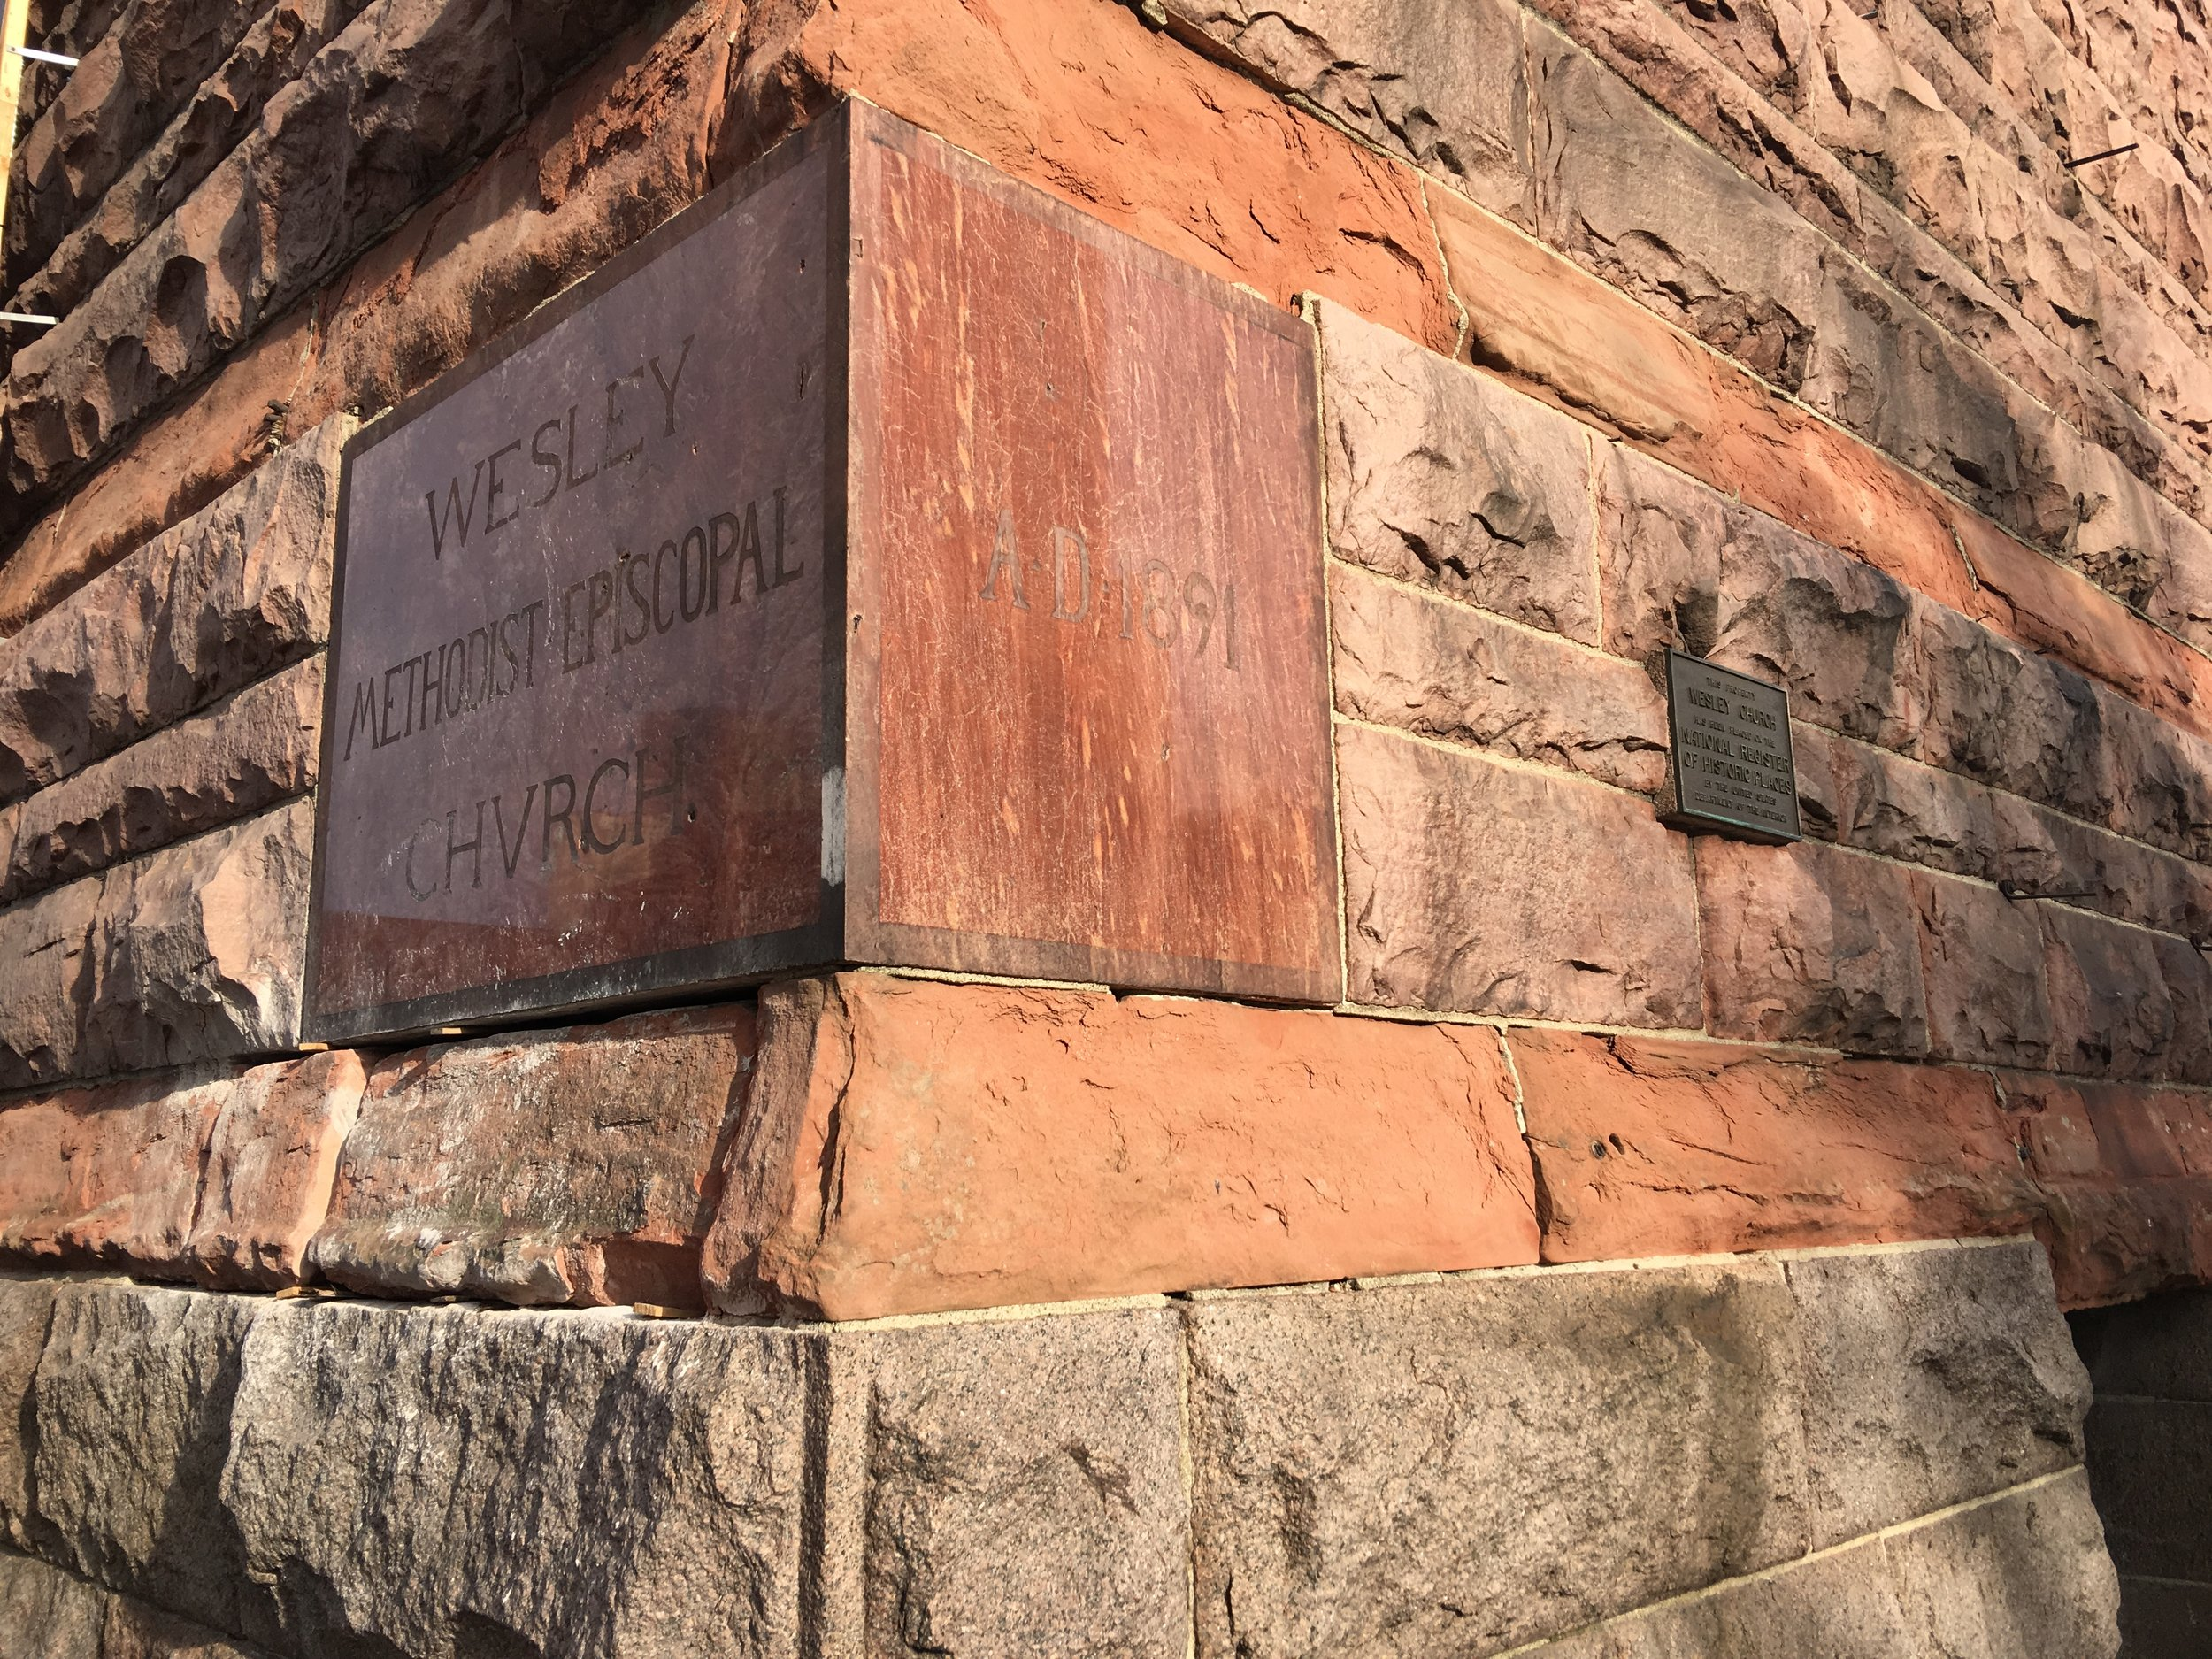 The sandstone block under the left portion of the cornerstone was cut in order to extract the memorobilia box